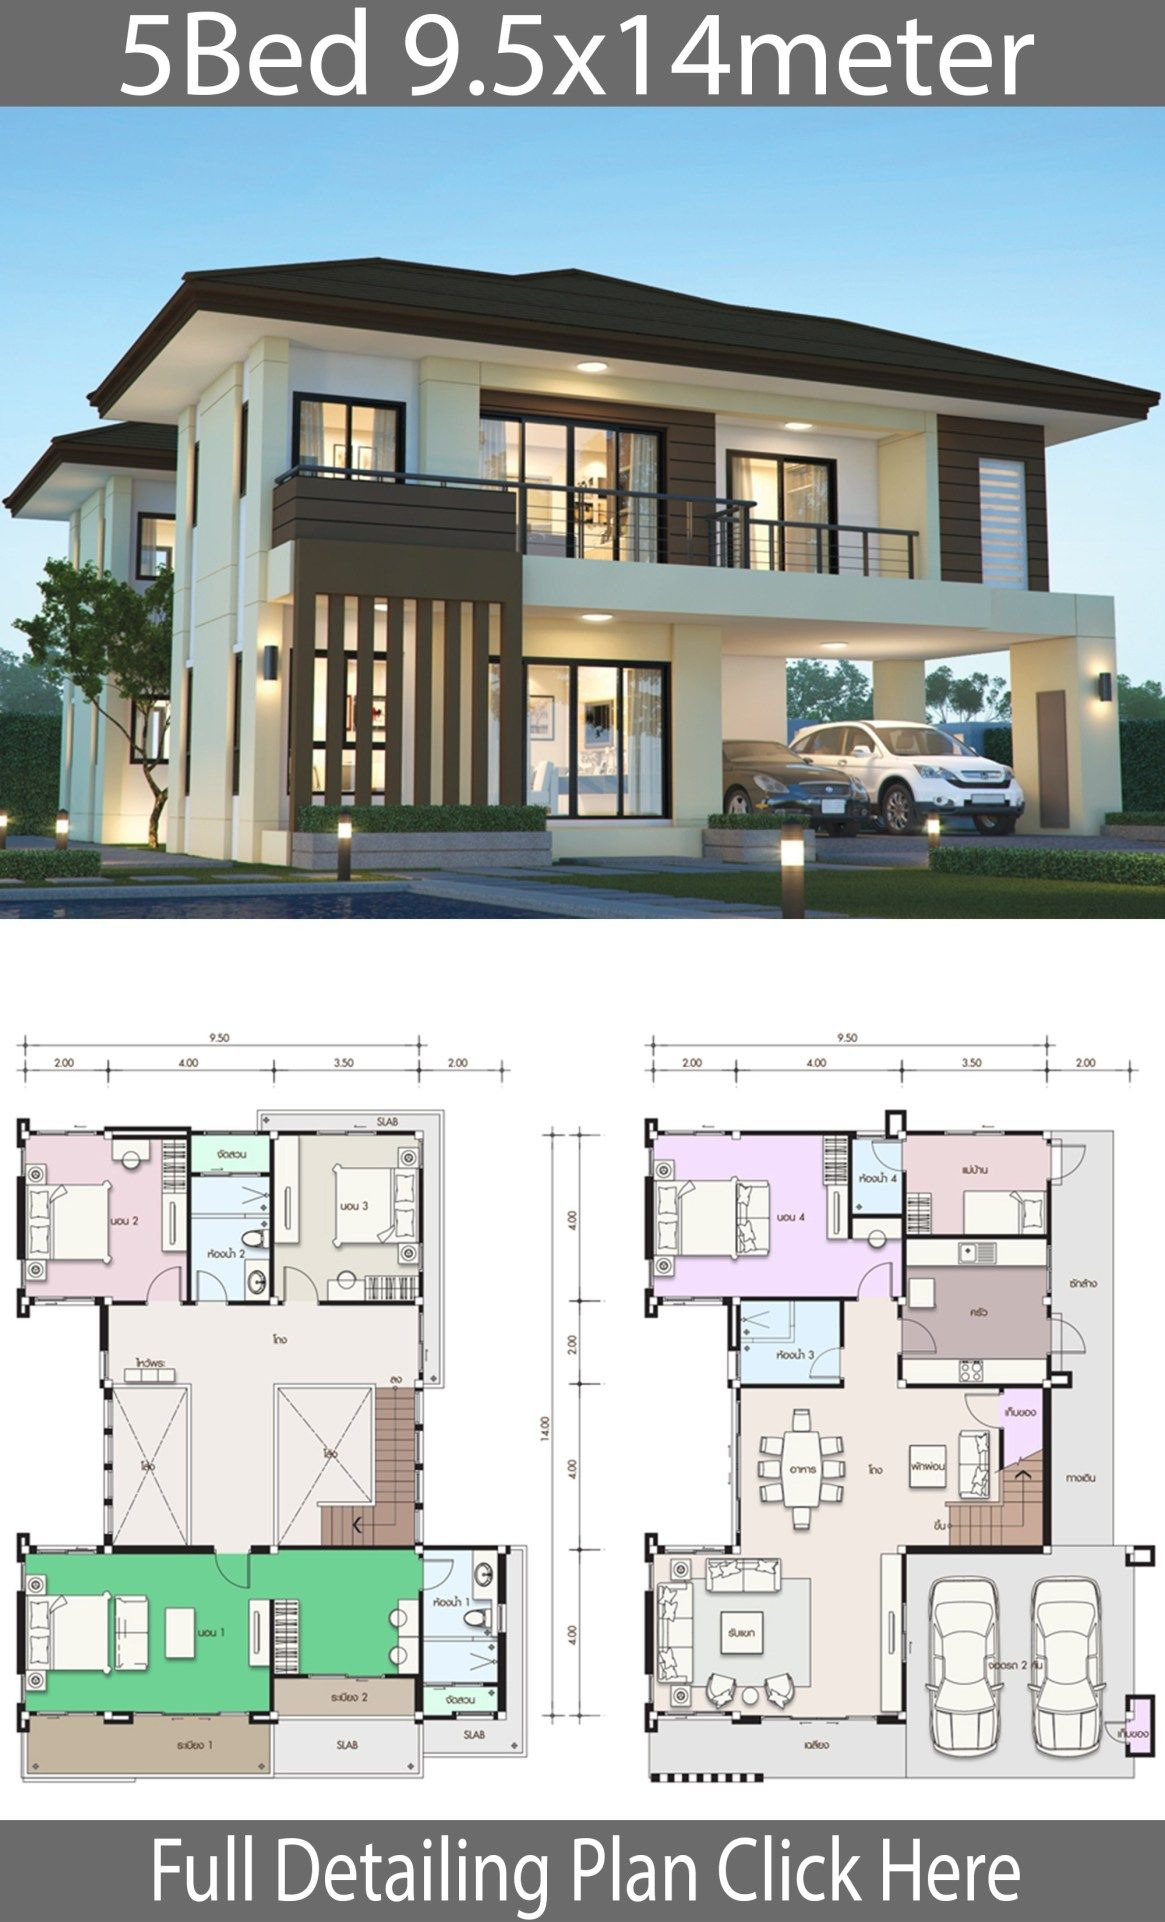 5 Bedroom Modern House Plans Inspirational House Design Plan 9 5x14m with 5 Bedrooms